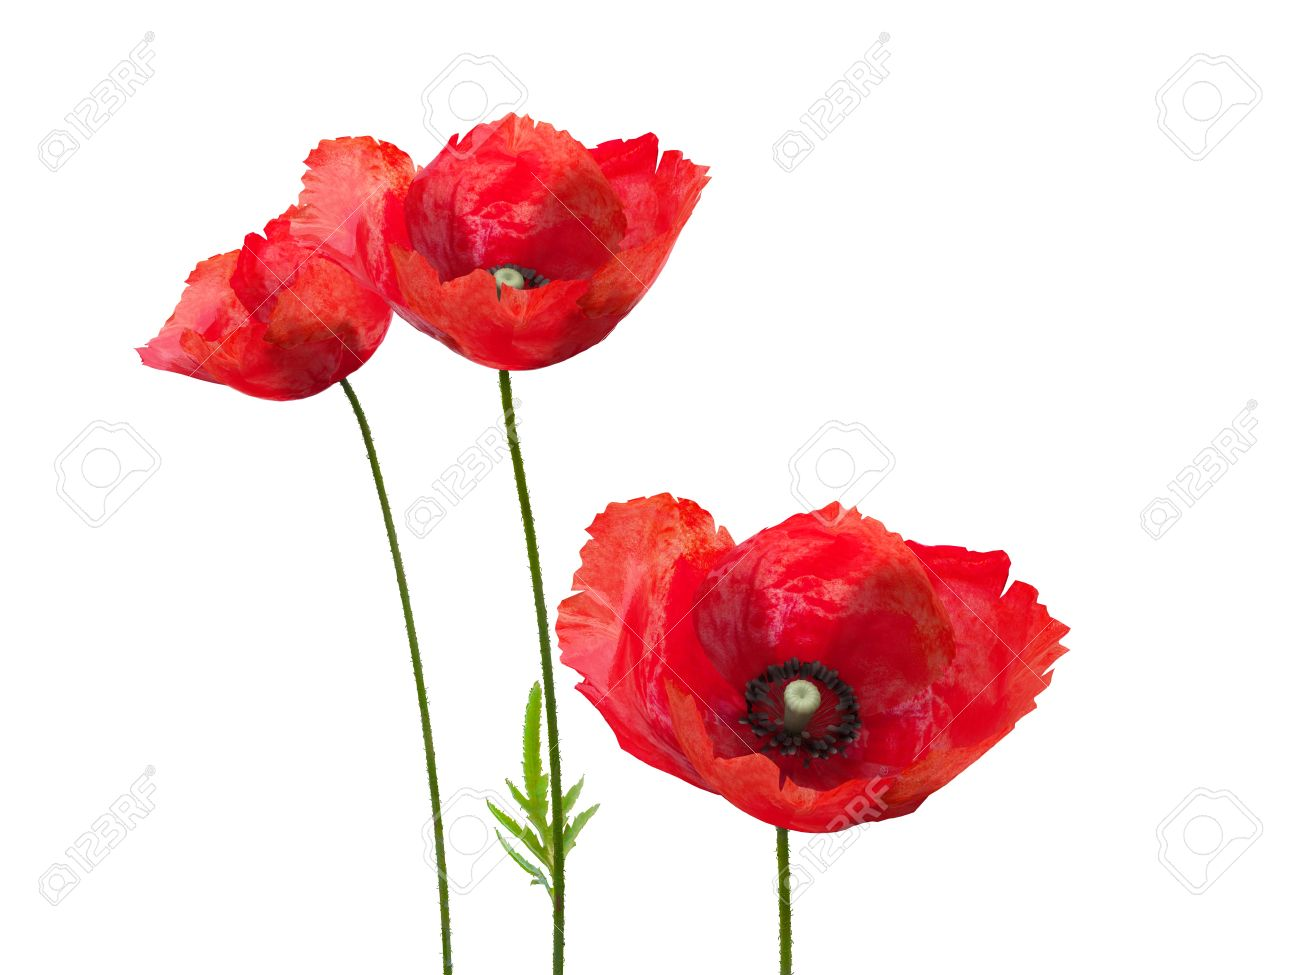 Poppy Flowers Stock Photos Royalty Free Poppy Flowers Images